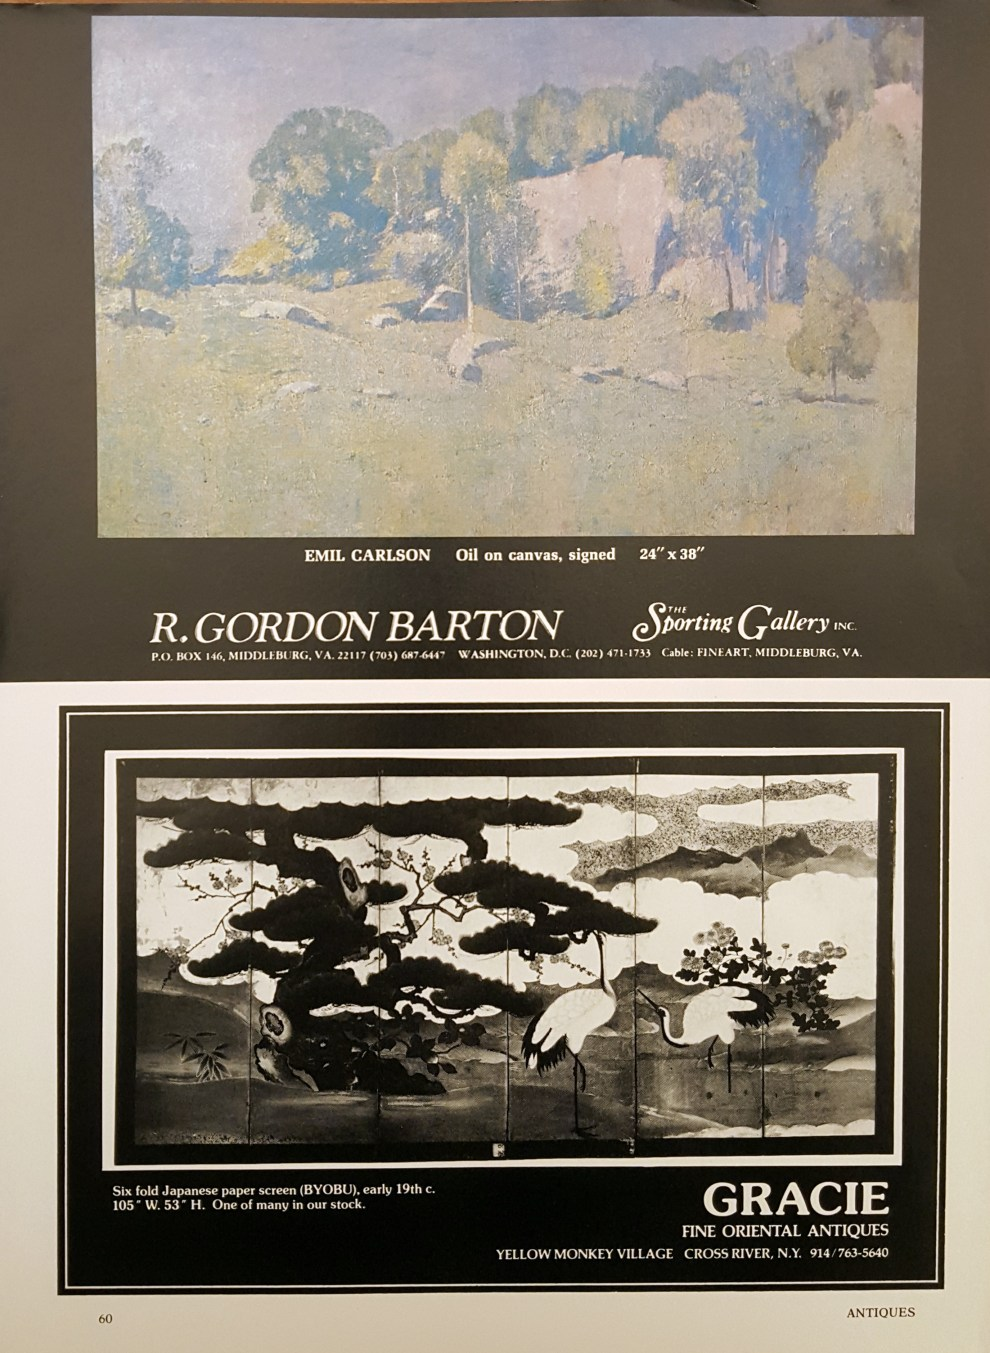 """Emil Carlsen Ad for R. Gordon Barton"", The Magazine Antiques, xxxx, page 60, illustrated: color"